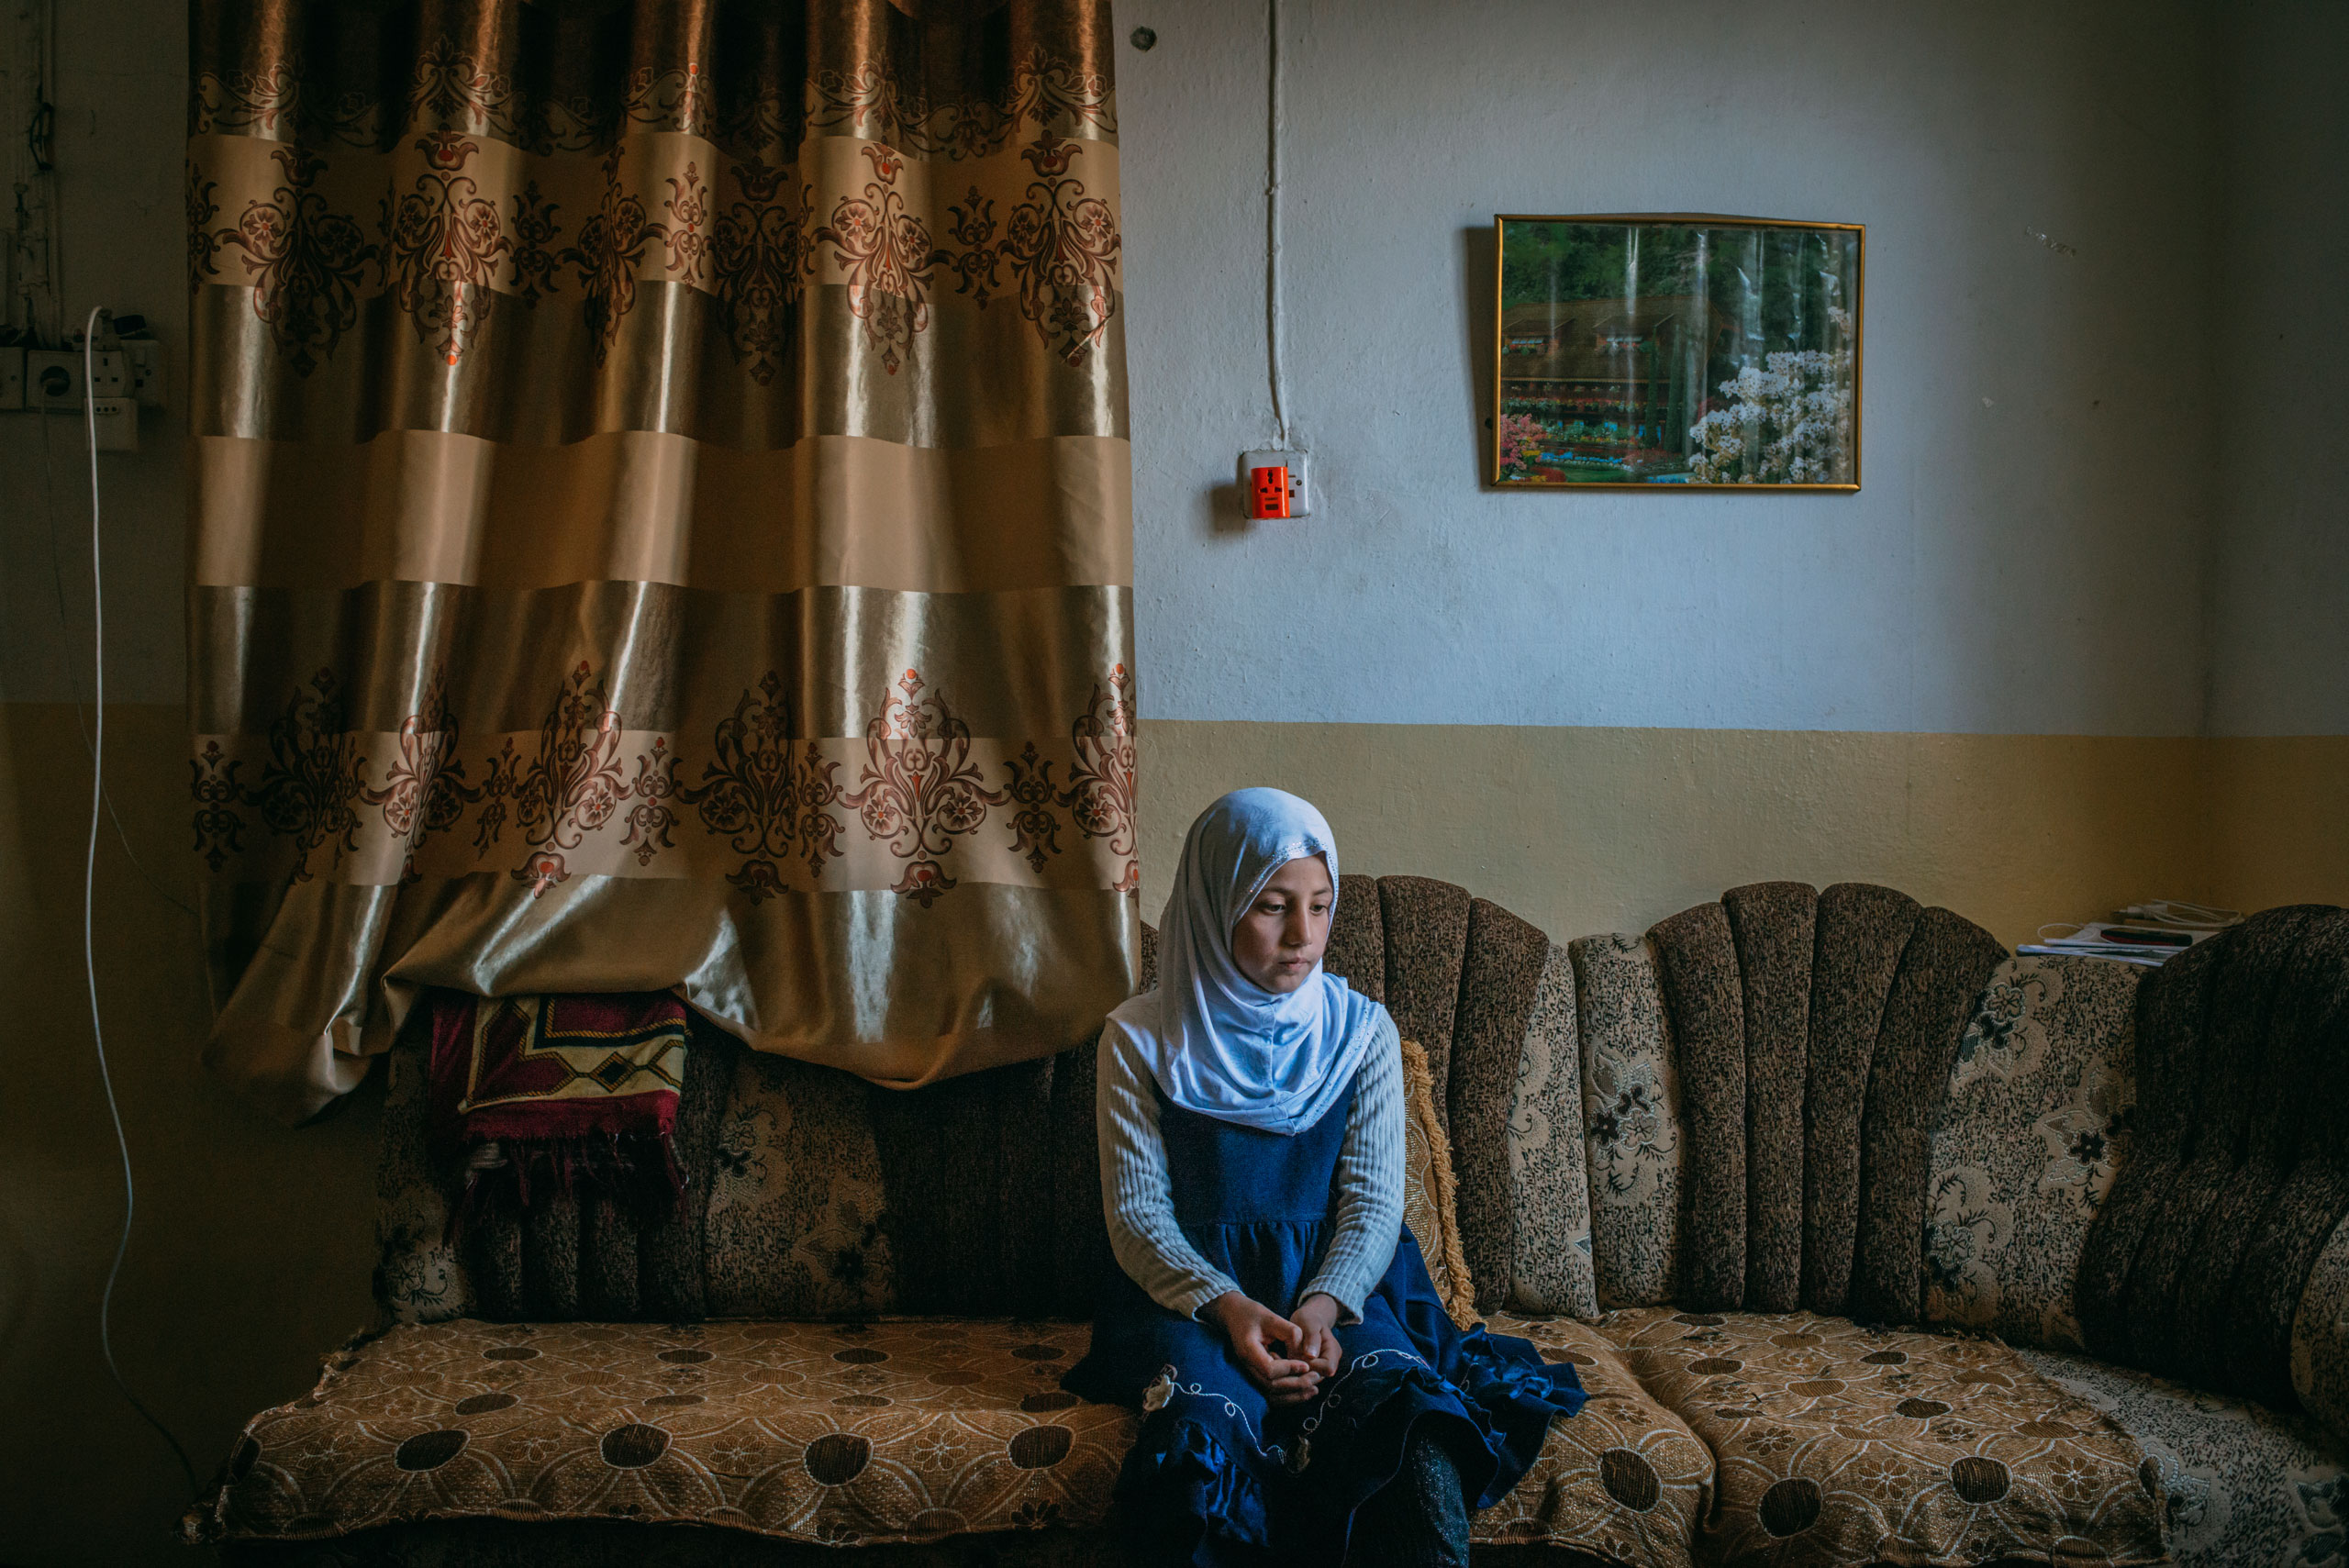 """Safiya Qais, 9, lives with her family in a section of eastern Mosul that was liberated from ISIS in January. During the offensive, her house was overrun with Islamic State militants. Her family was forced to flee for several weeks, living in an empty house that was further from the clashes. The home's exterior is riddled with bullet holes. On April 2, 2017, she answered a few questions about her recent days in this war zone. Her most recent meal? Eggs. How does she fall asleep at night? She sleeps well now; she just closes her eyes and tries to sleep. Before, """"I was afraid of the planes bombing."""" What does she want to be when she grows up? A teacher."""